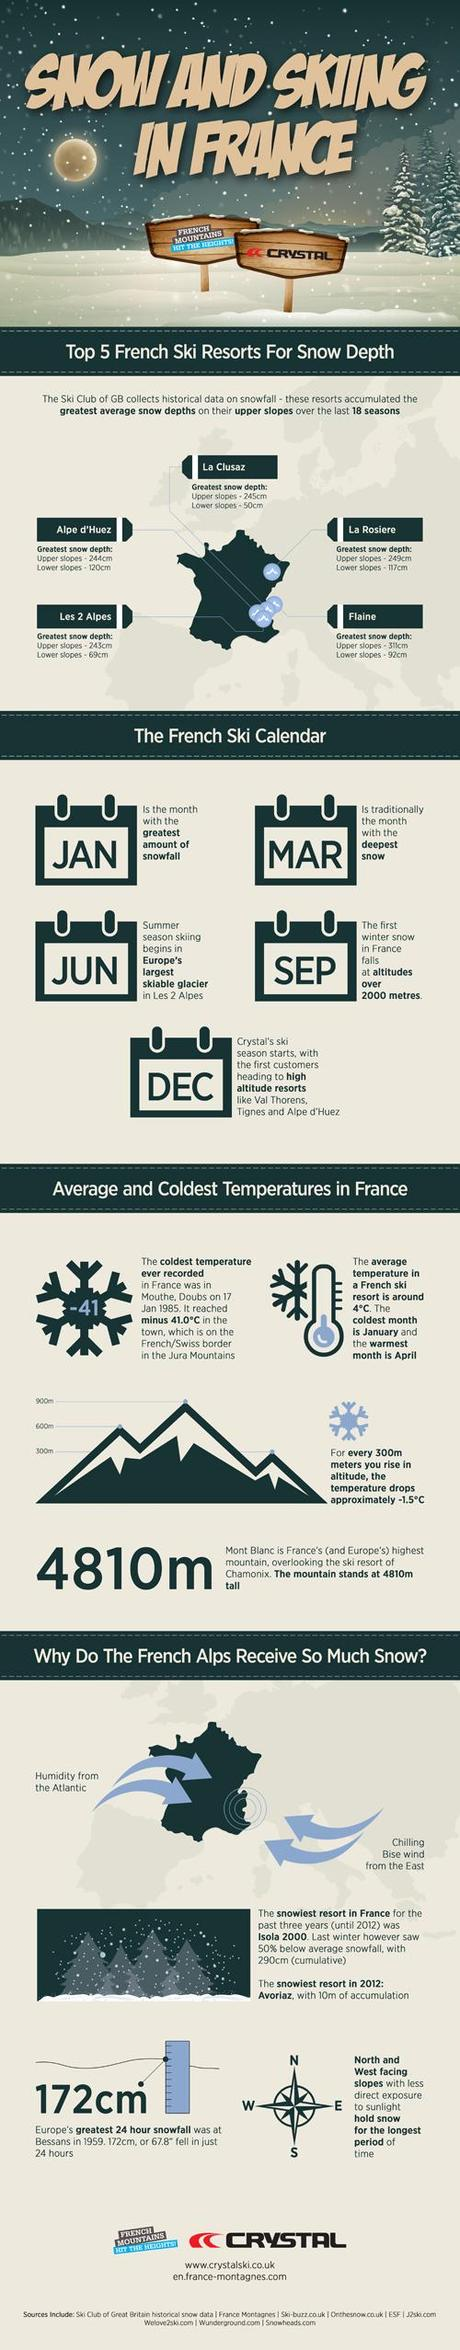 A visual guide to skiing in France